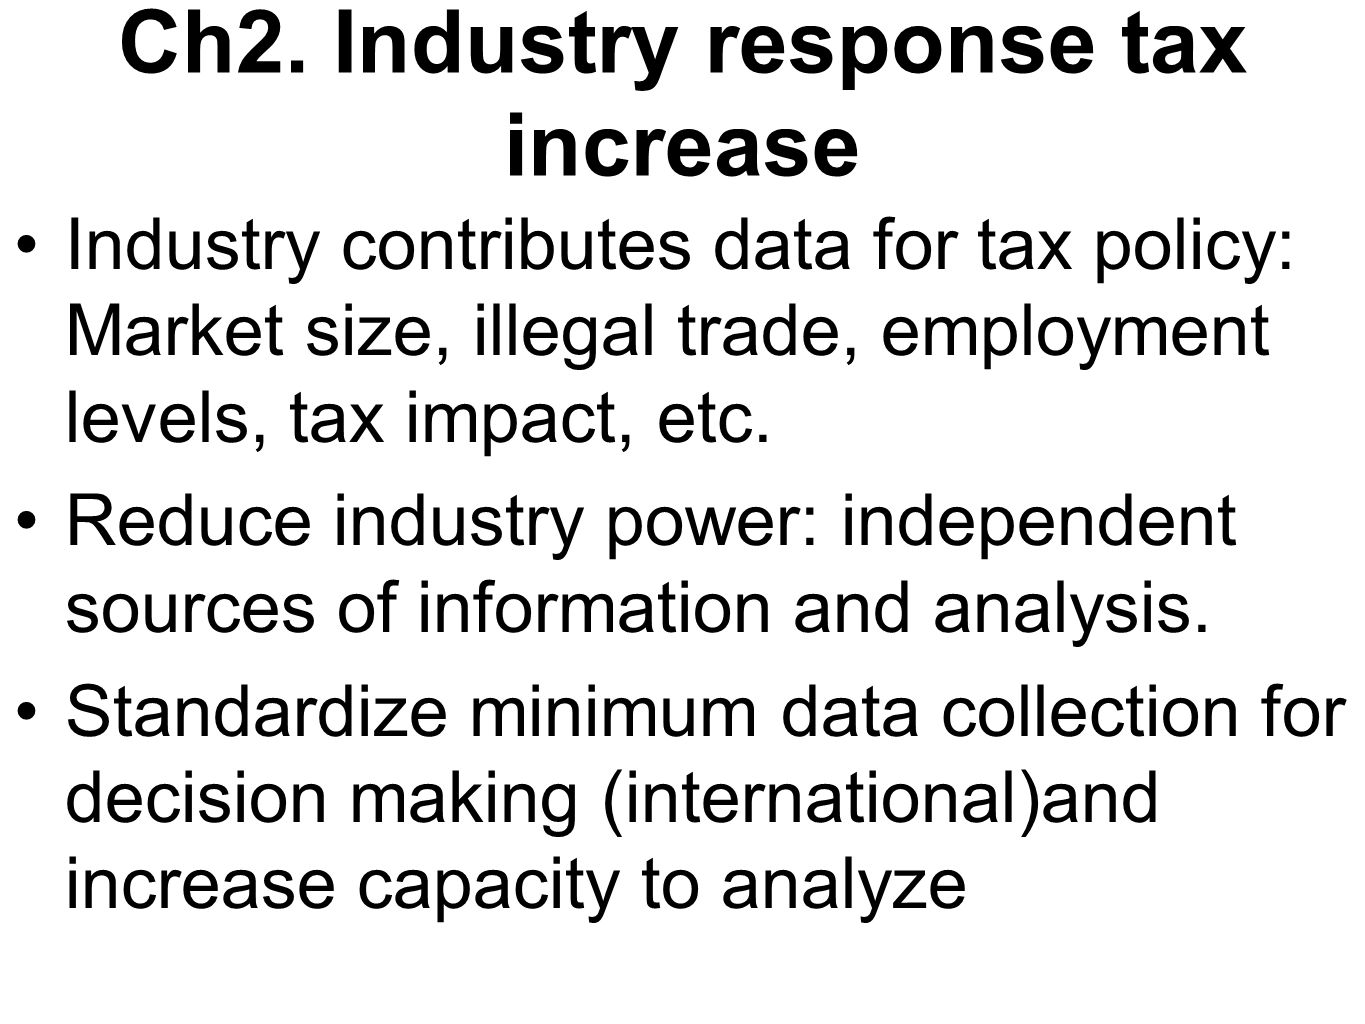 Ch2. Industry response tax increase